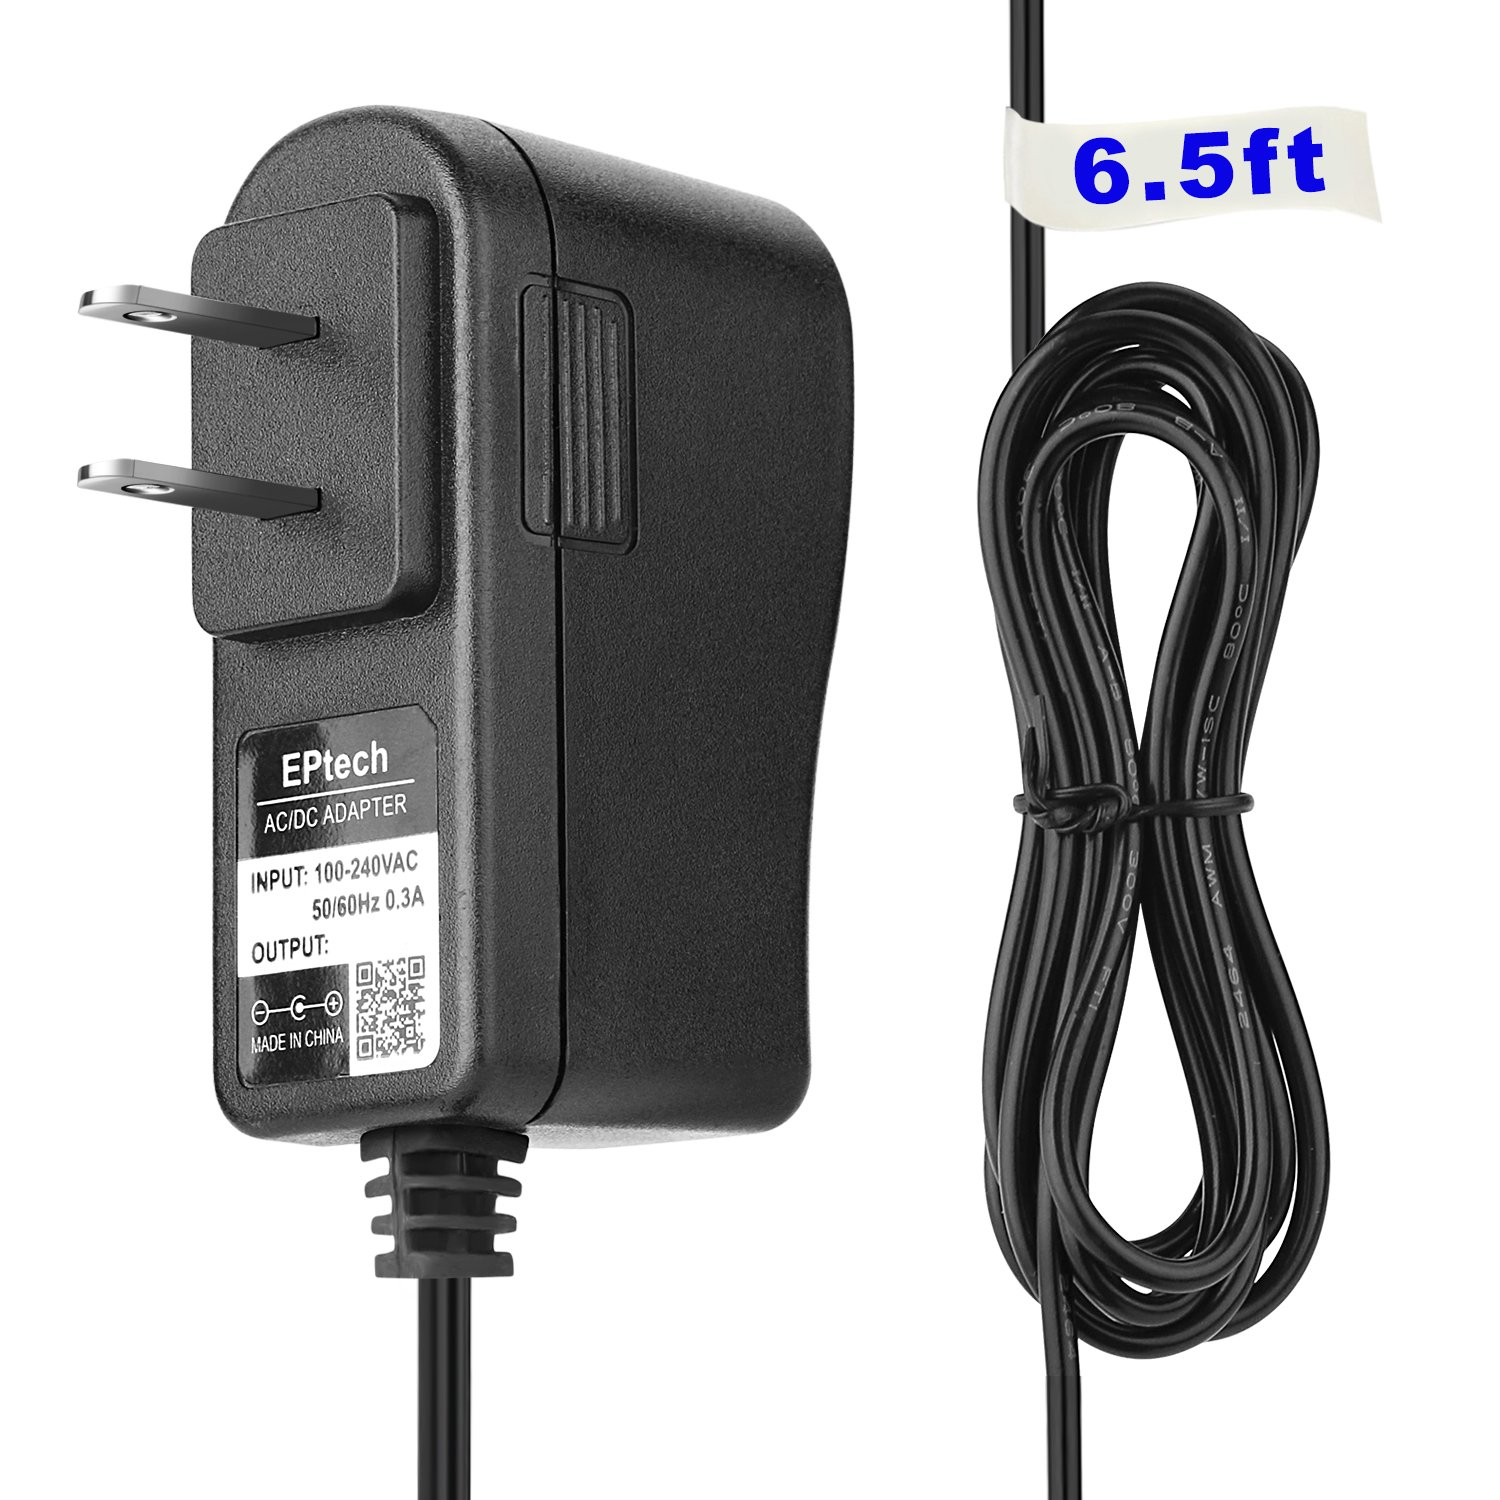 6.5FT AC Adapter Cord for PROFORM HYBRID TRAINER PFEL03815 PFEL038150 PFEL038151 Elliptical Recumbent Bike